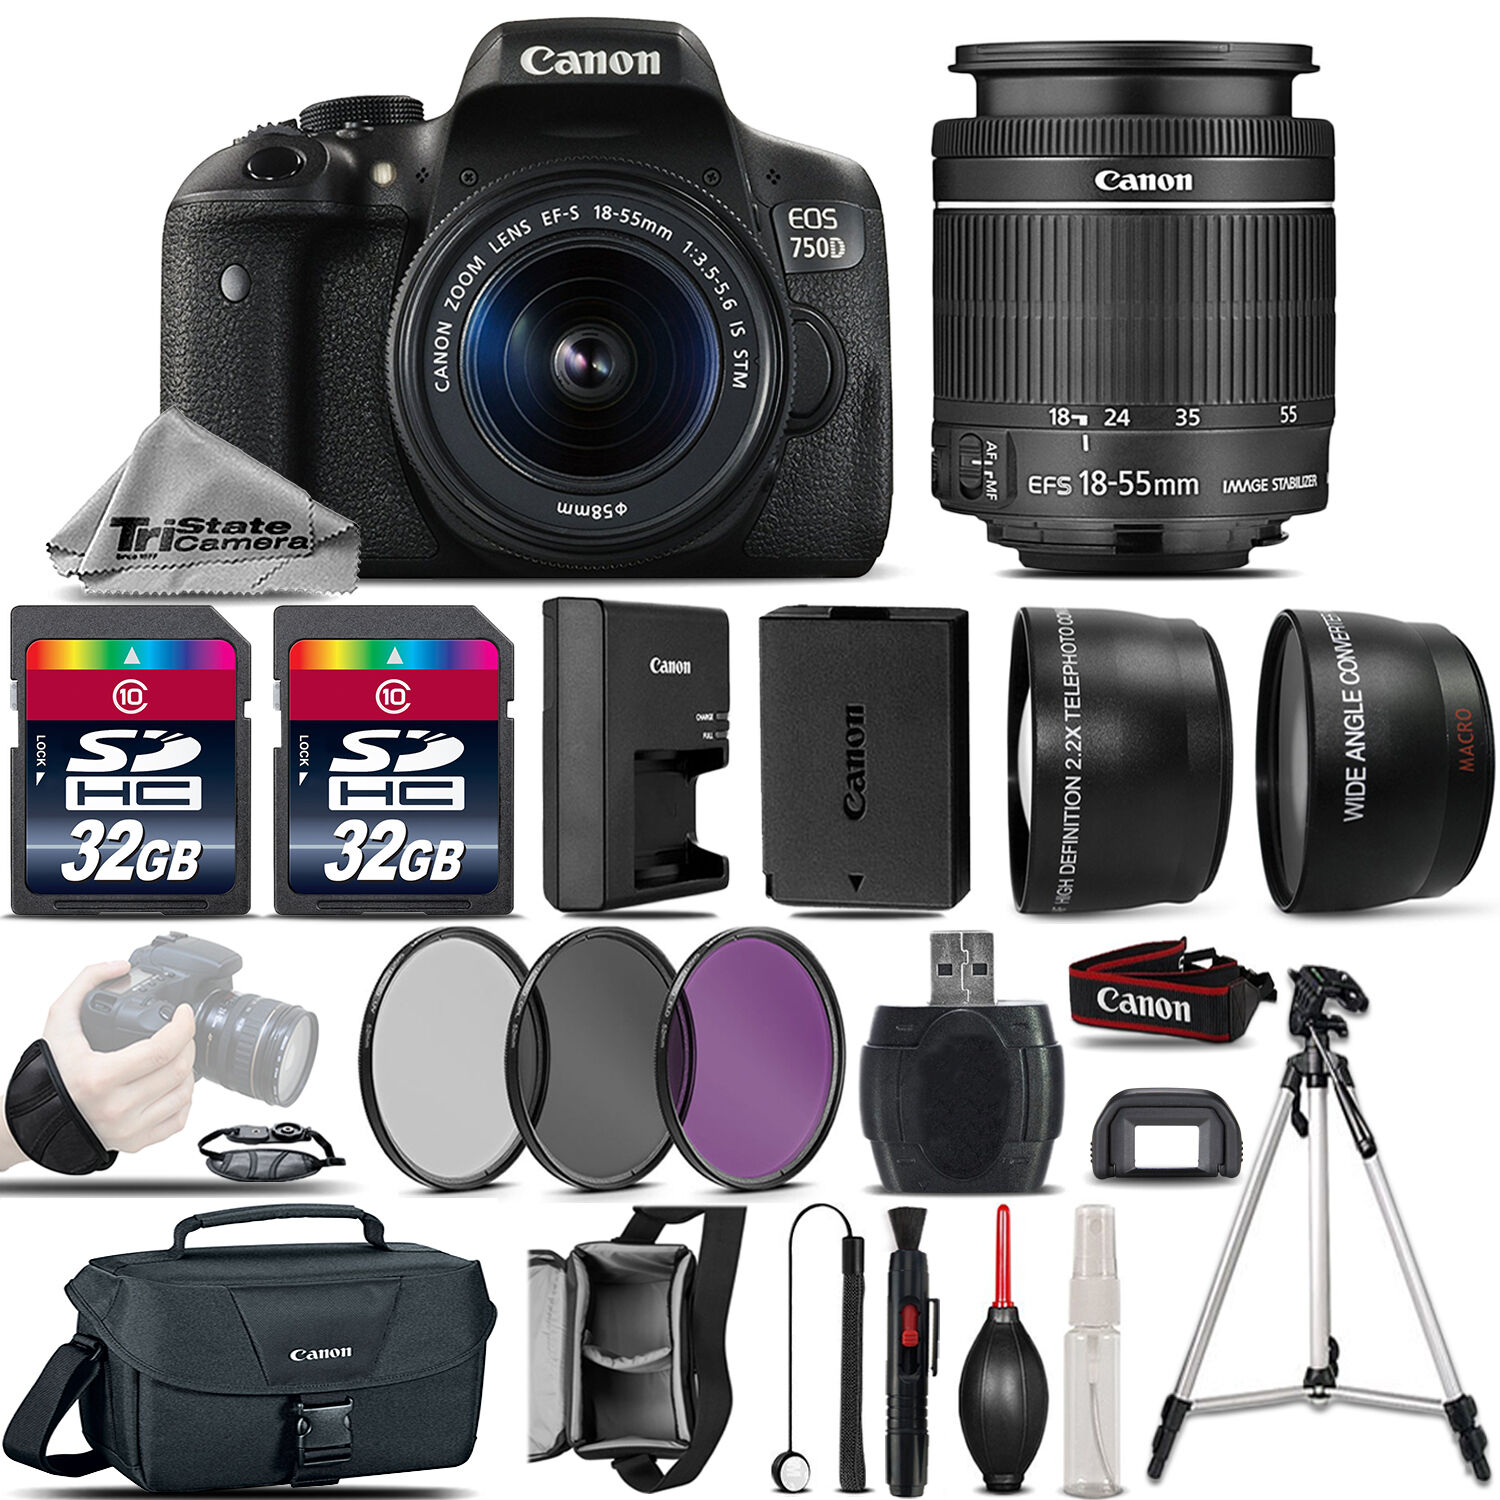 Canon Eos Rebel 750d T6i Camera 18 55mm Is Stm Lens 64gb 3 6d Kit 24 105mm F 35 56 Wifi And Gps